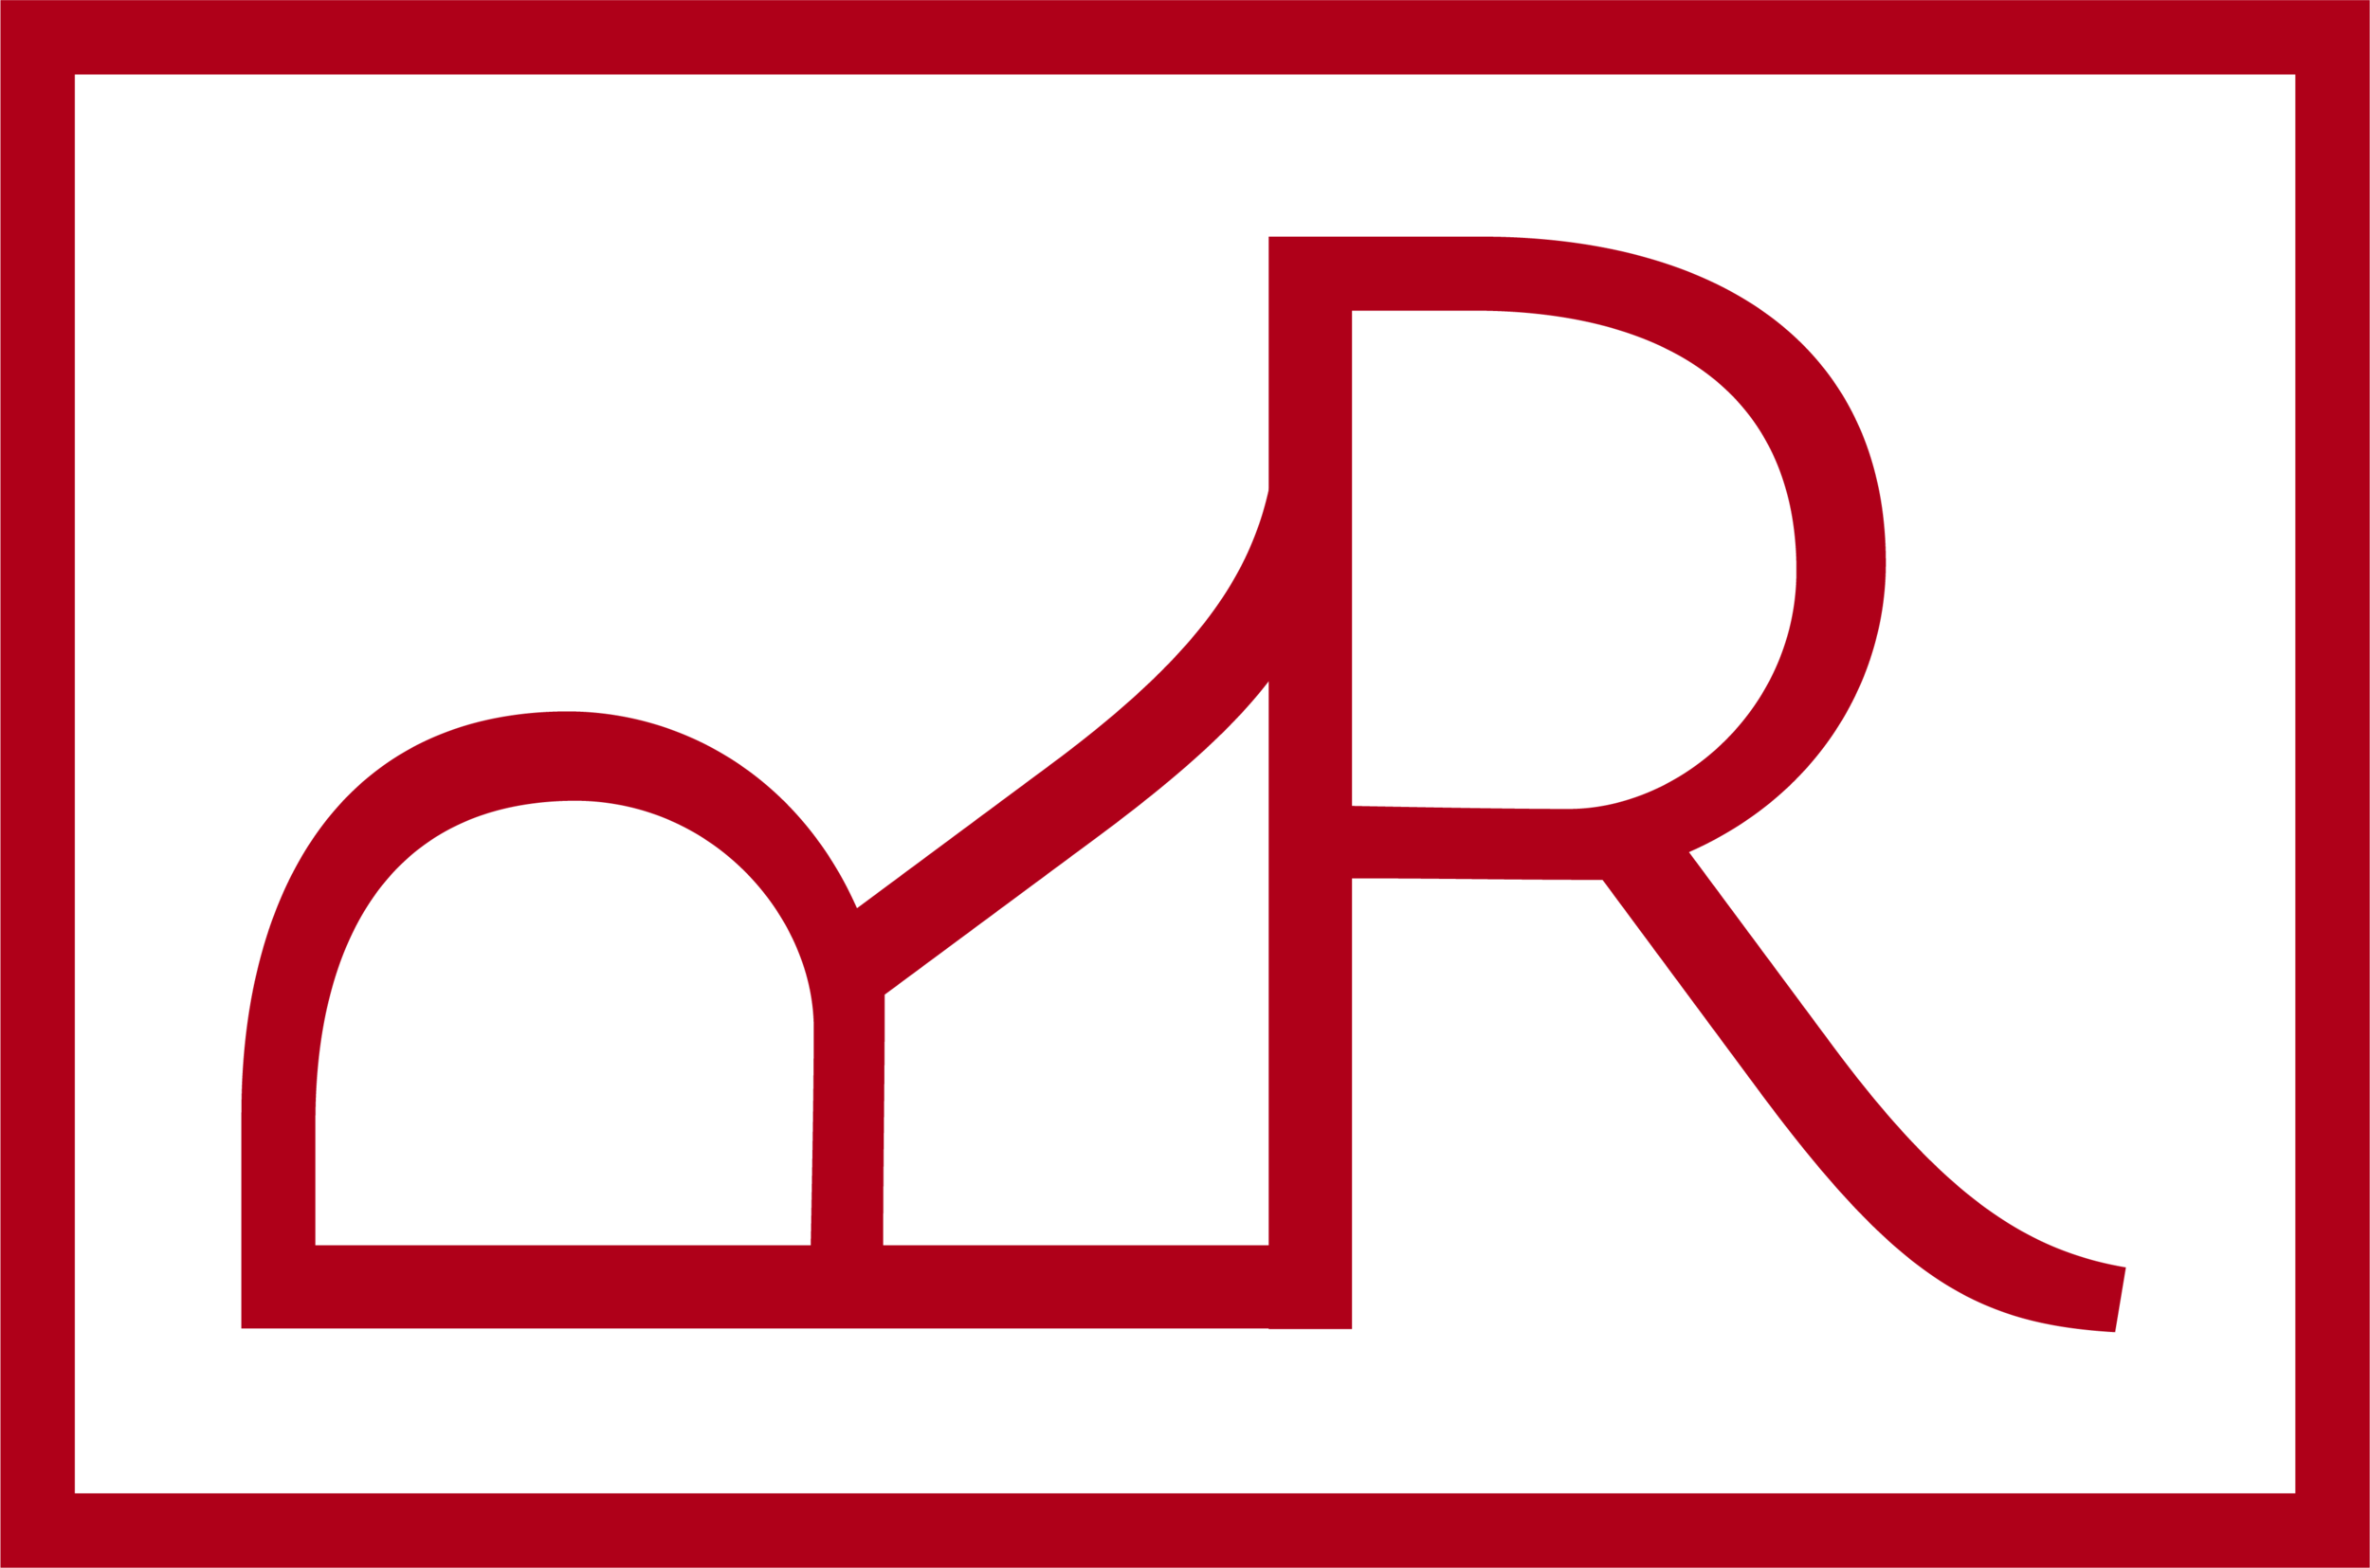 FINAL LOGO_red.png